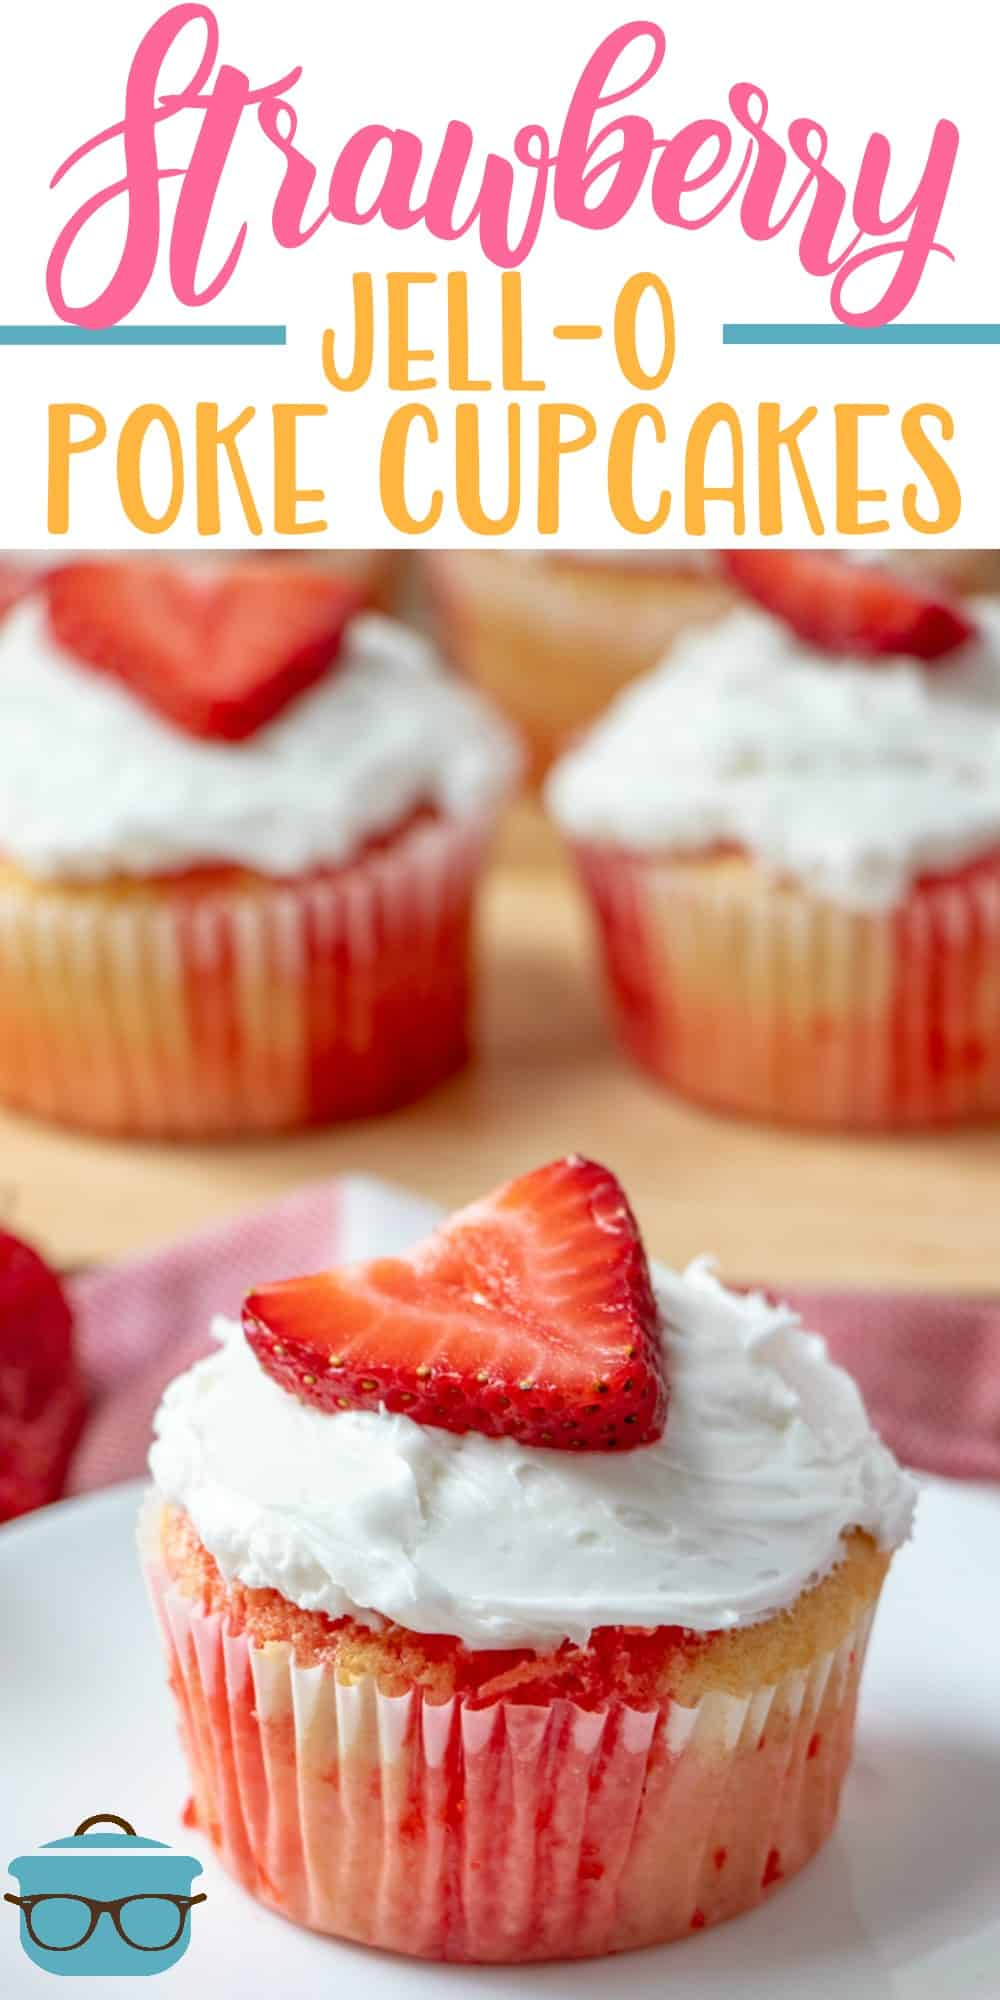 Strawberry Jello Poke Cupcakes are so simple to make and so yummy. Just some cake mix, strawberry jell-o and some whipped frosting! #cupcakes #jellocupcakes